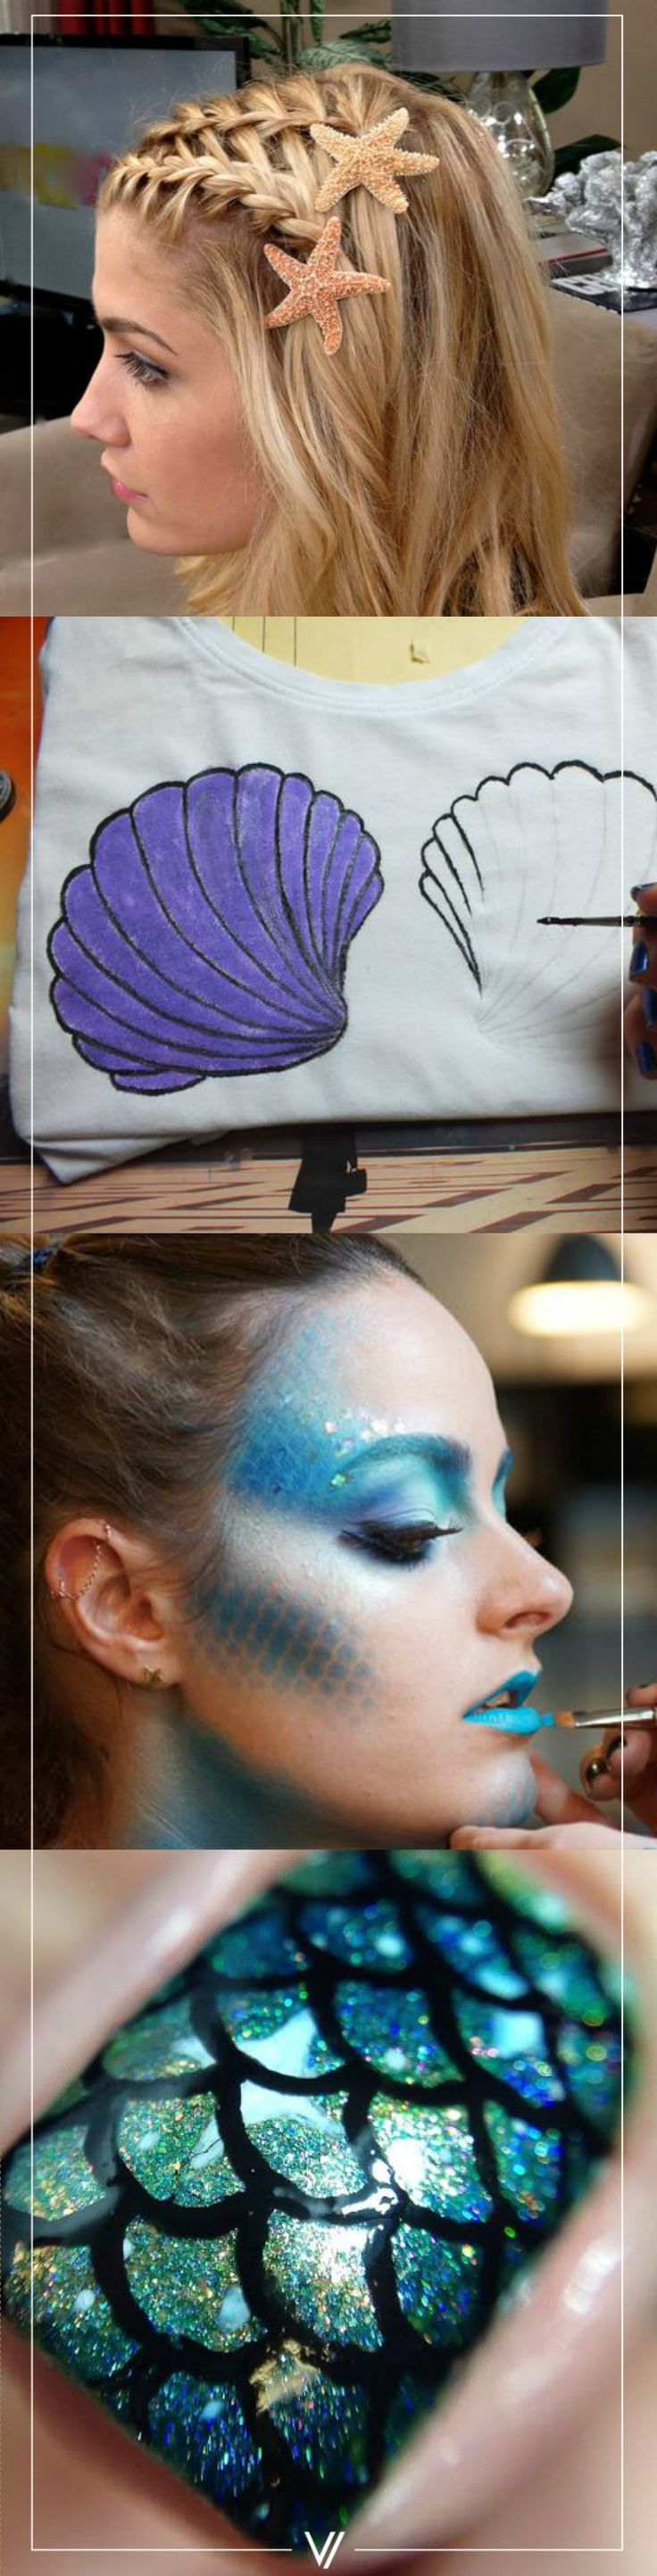 Vuelvete un sirena este halloween.  #Costume #Mermaid #Tutorial